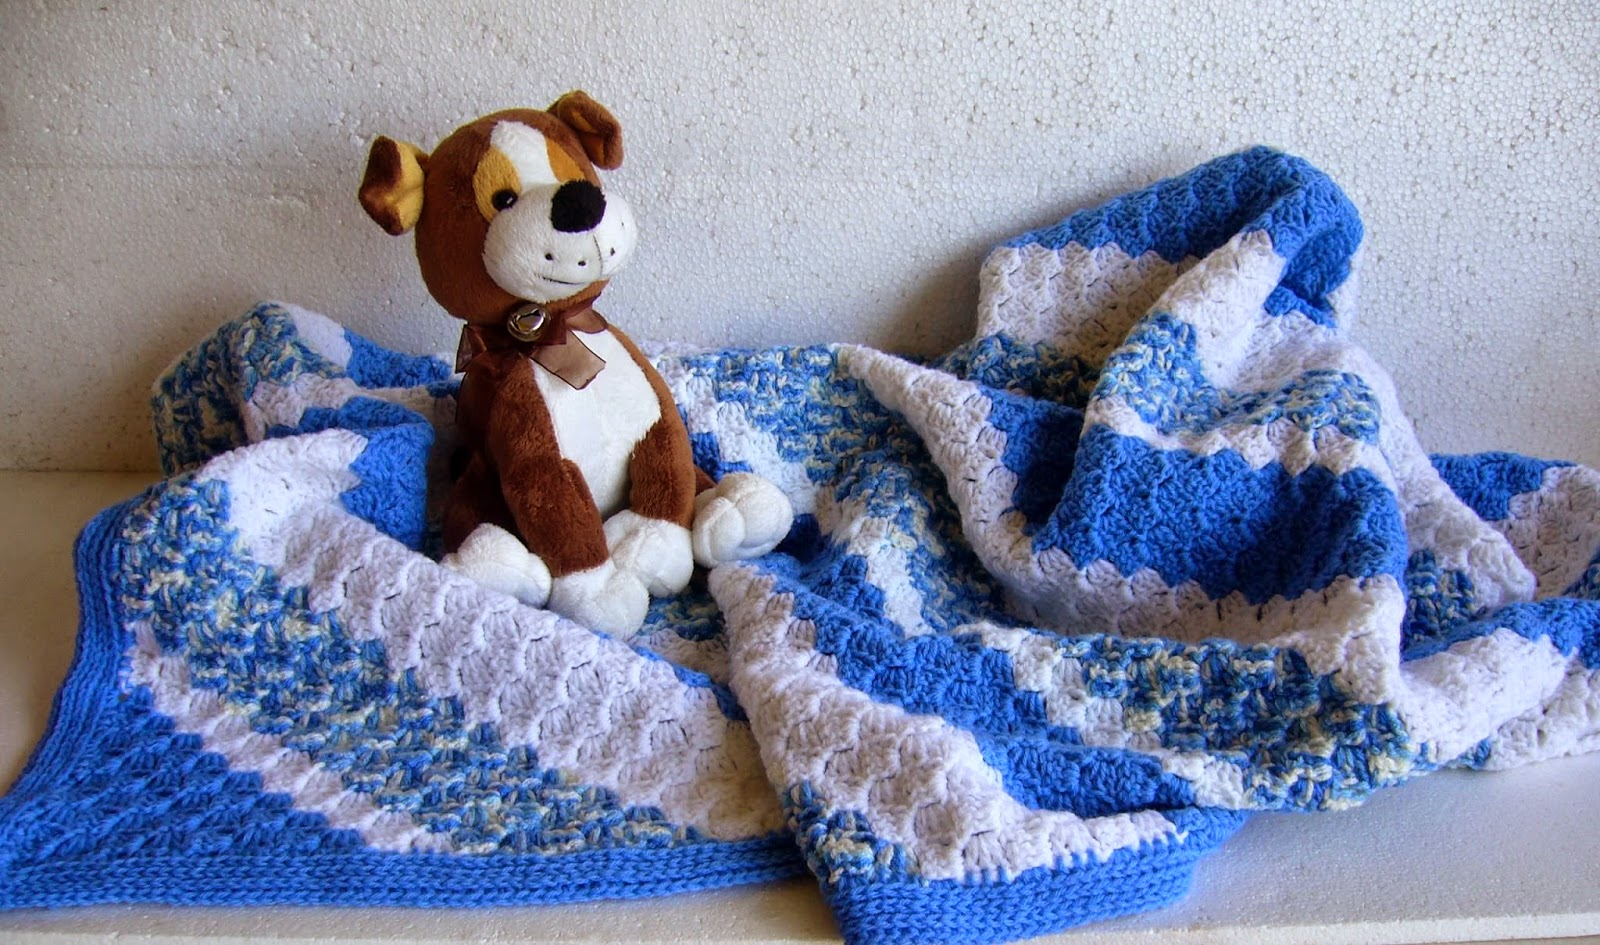 crochet corner to corner blanket